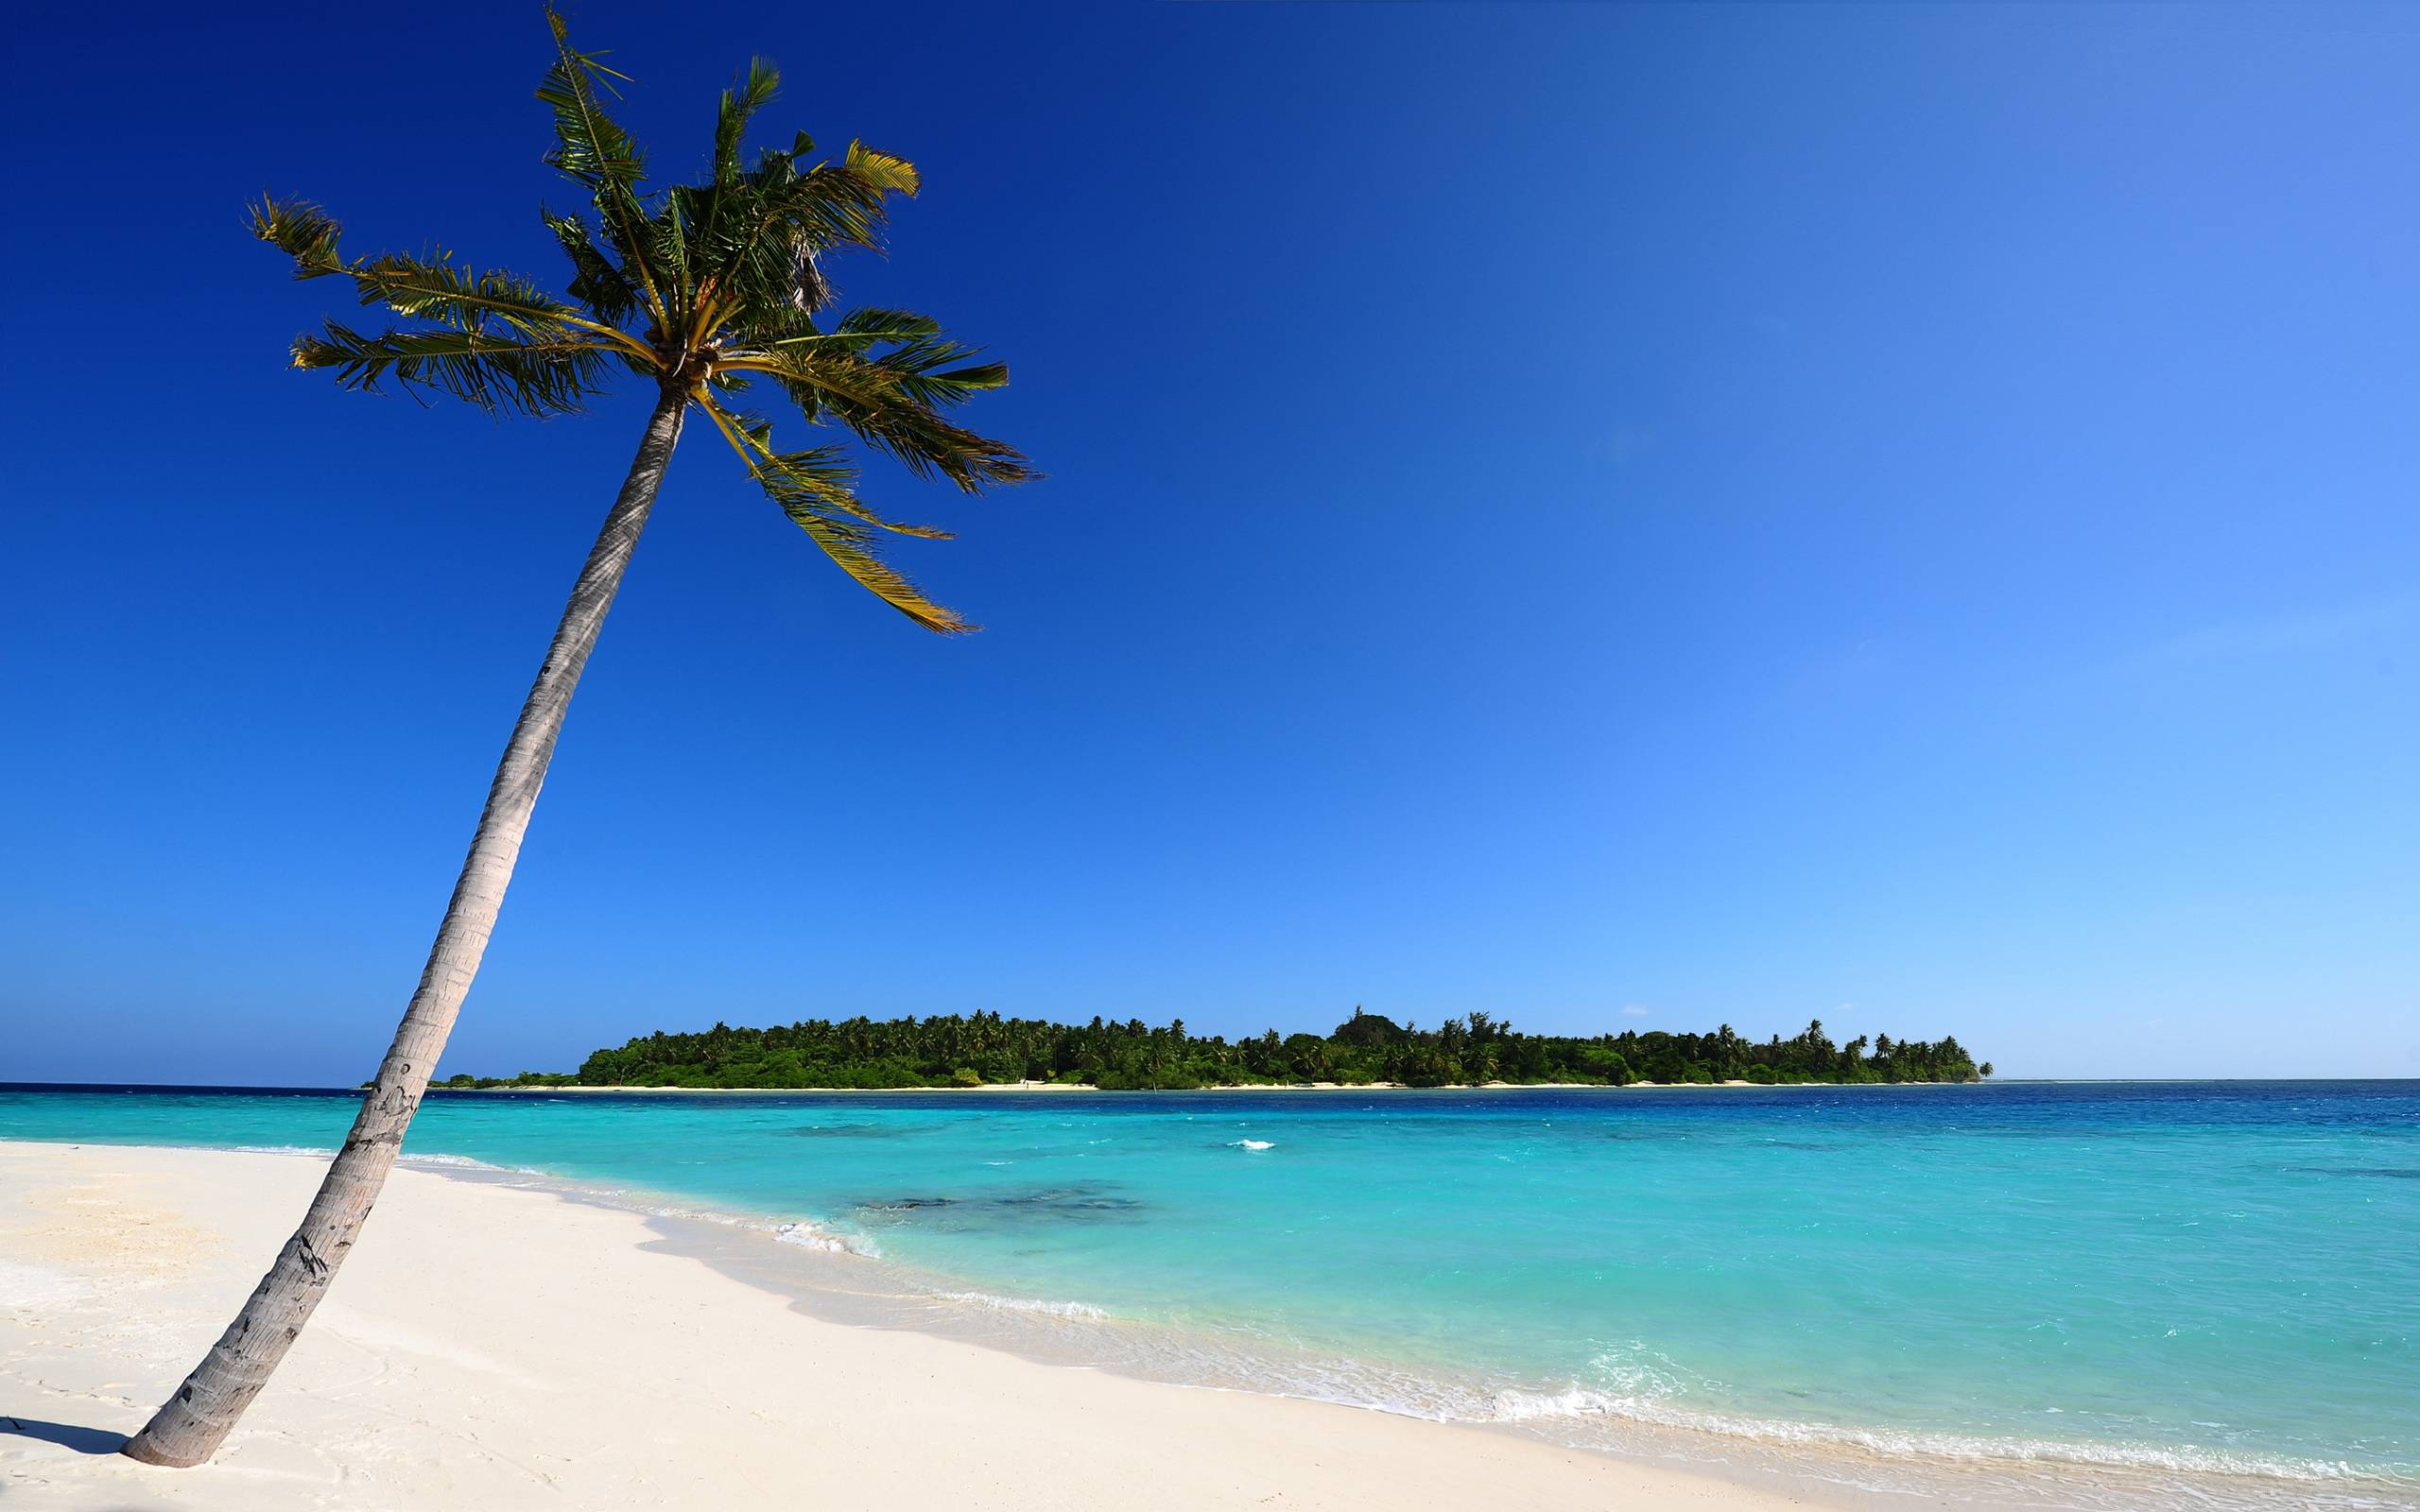 Maldivian Beach Wallpapers | HD Wallpapers